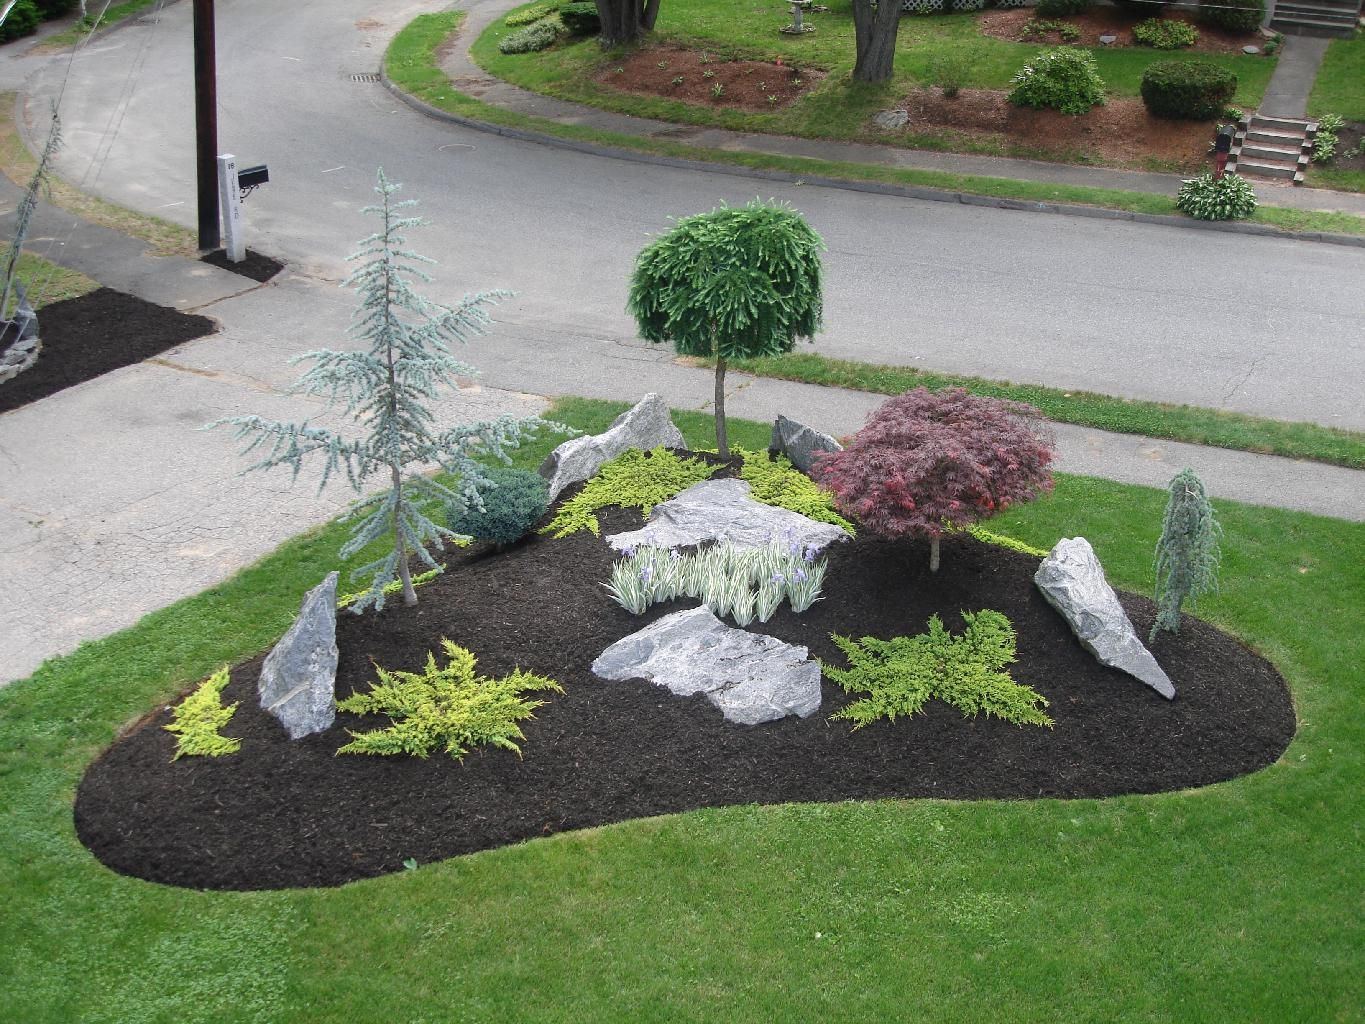 Simple landscape designs with rock beds google search for Landscape design flower beds